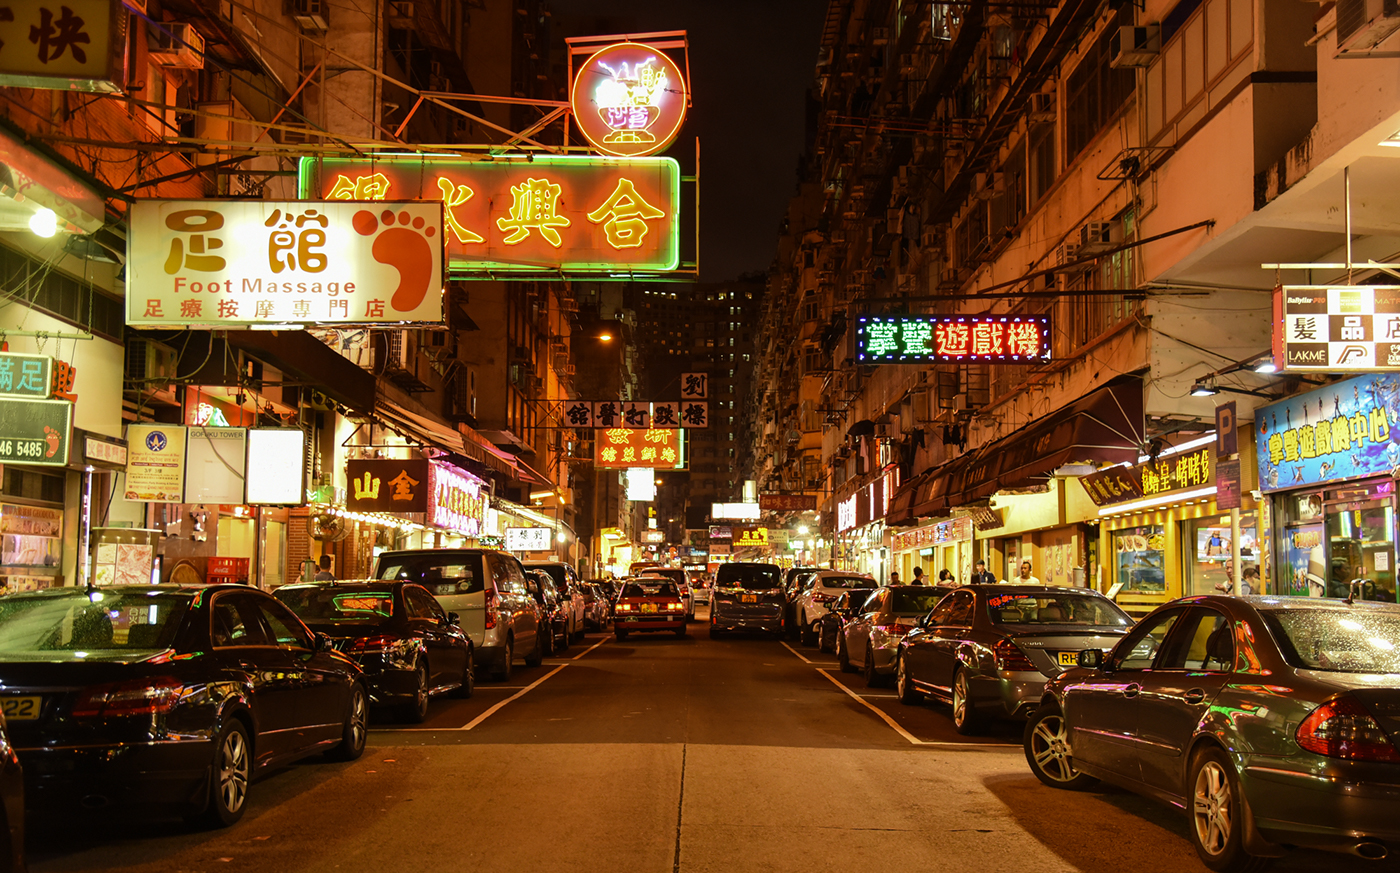 city asia lights Street Travel neon buildings architecture